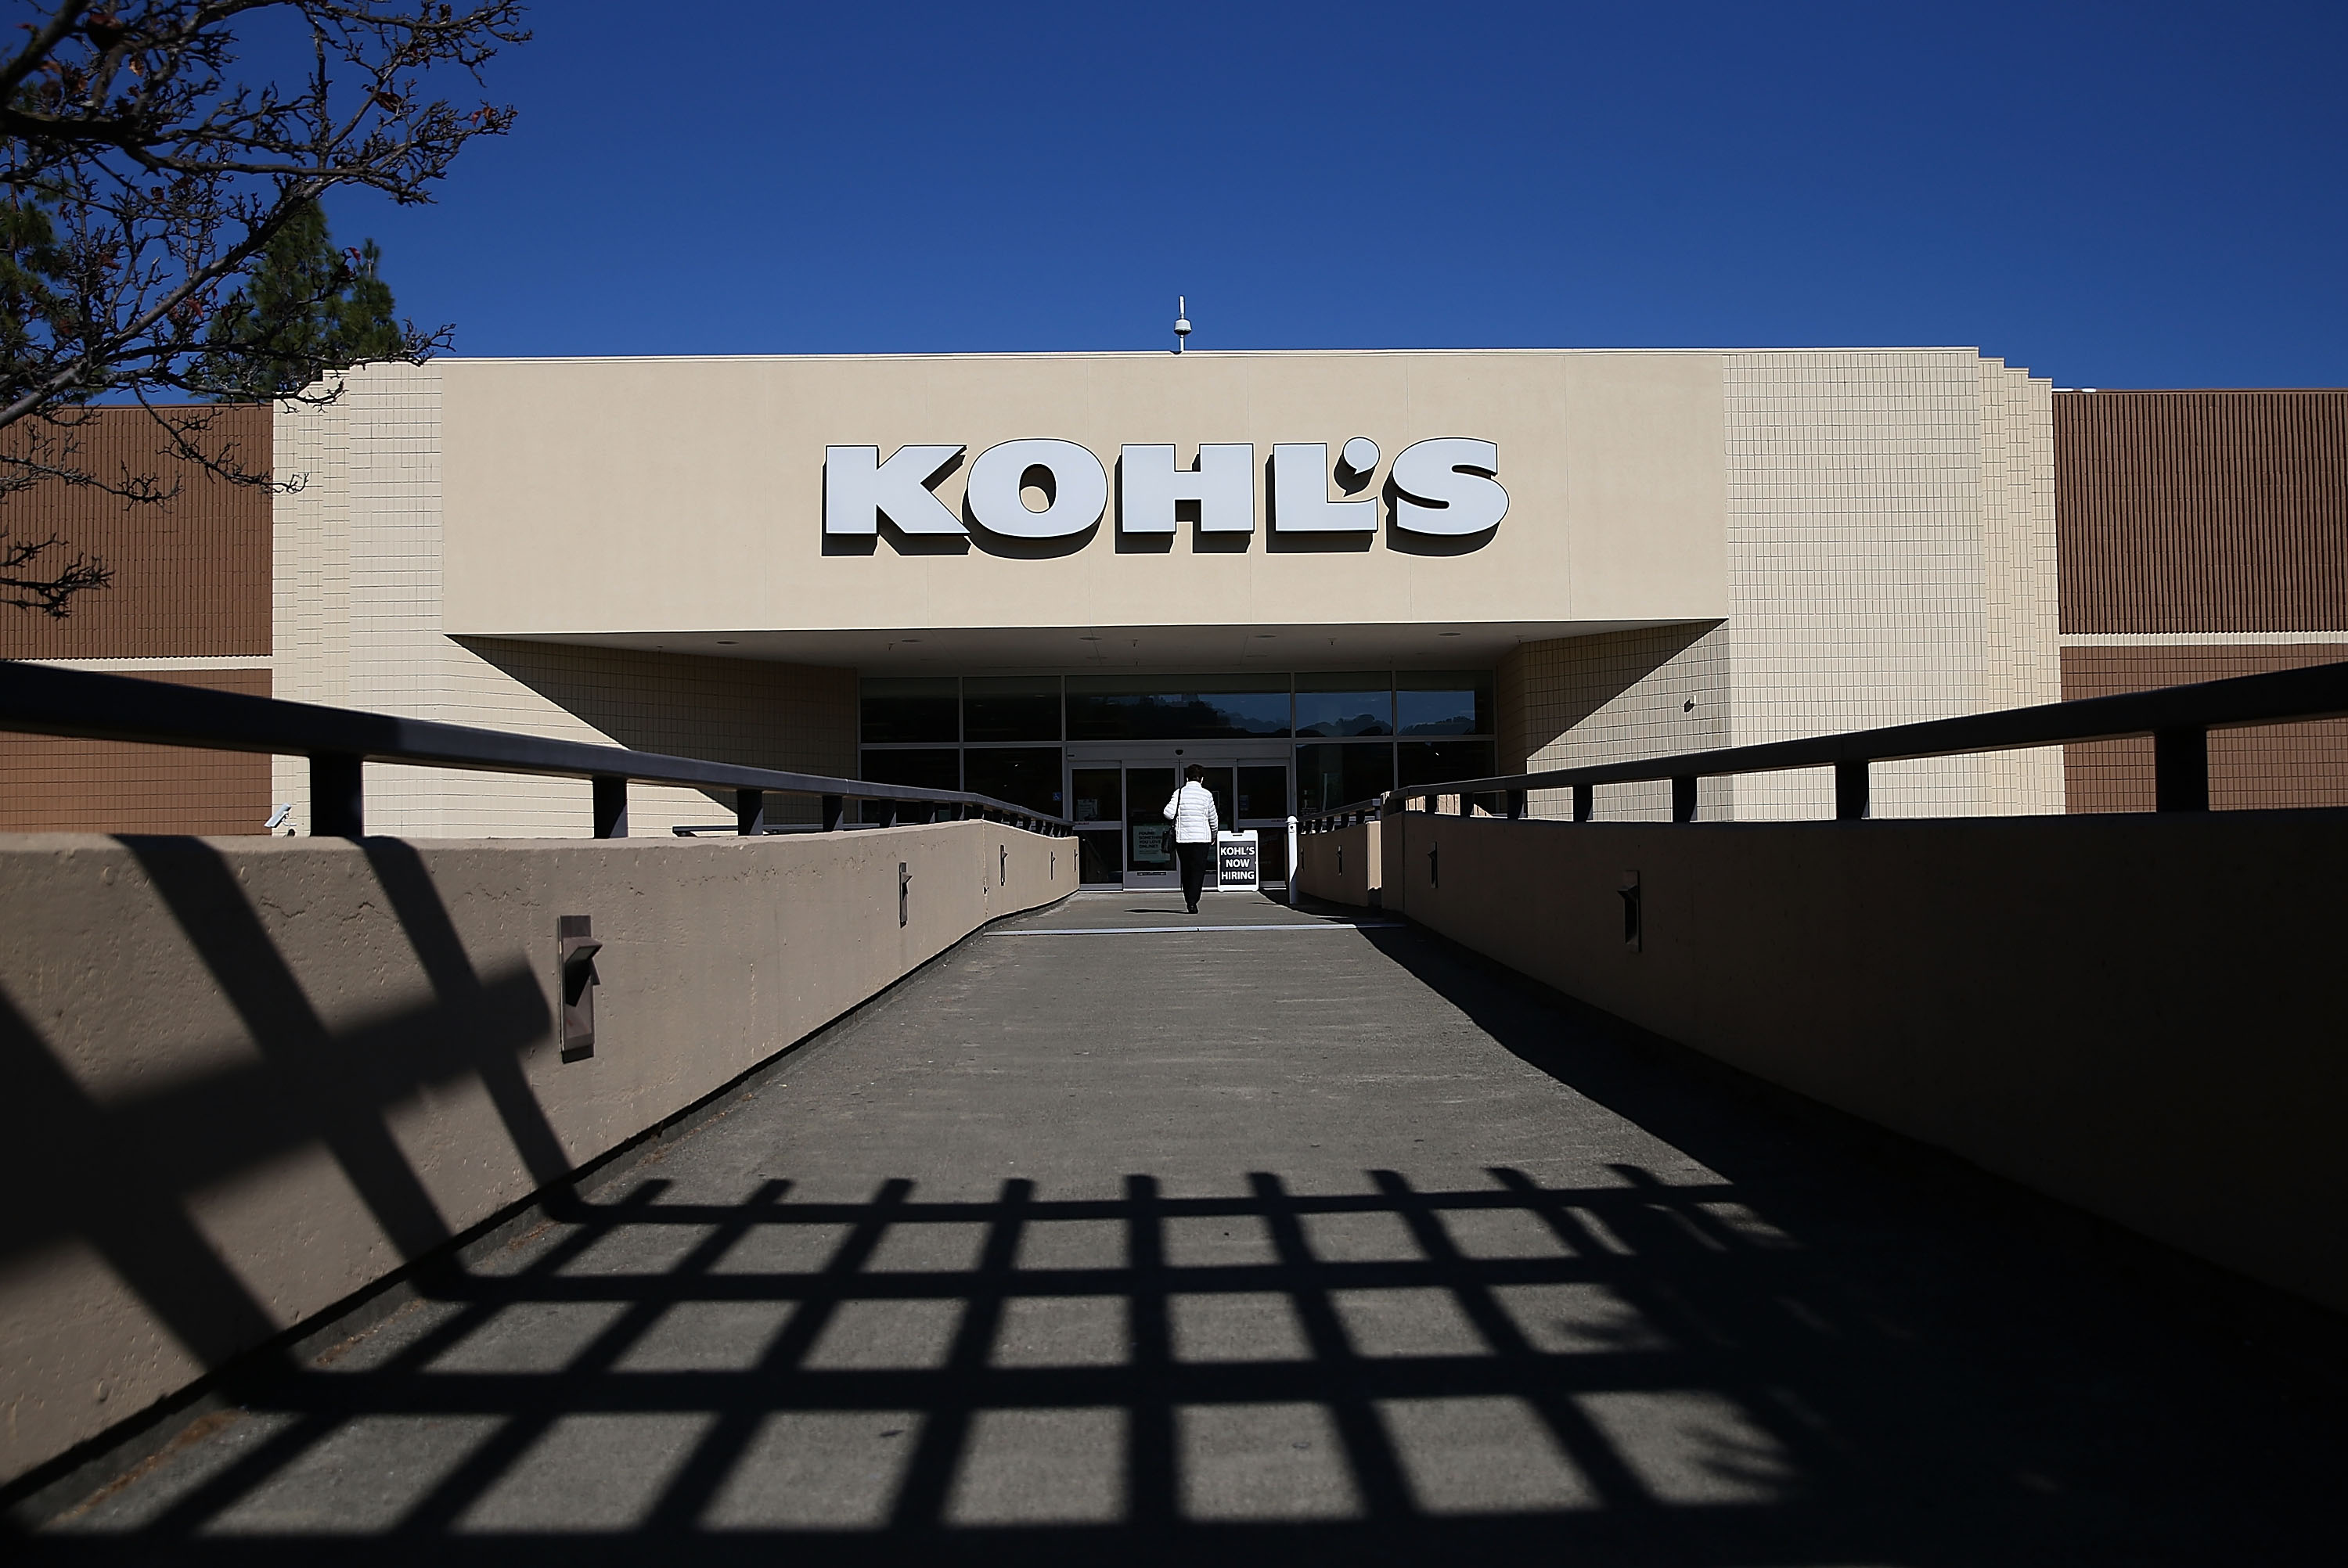 A customer enters a Kohl's store on November 12, 2015 in San Rafael, California.